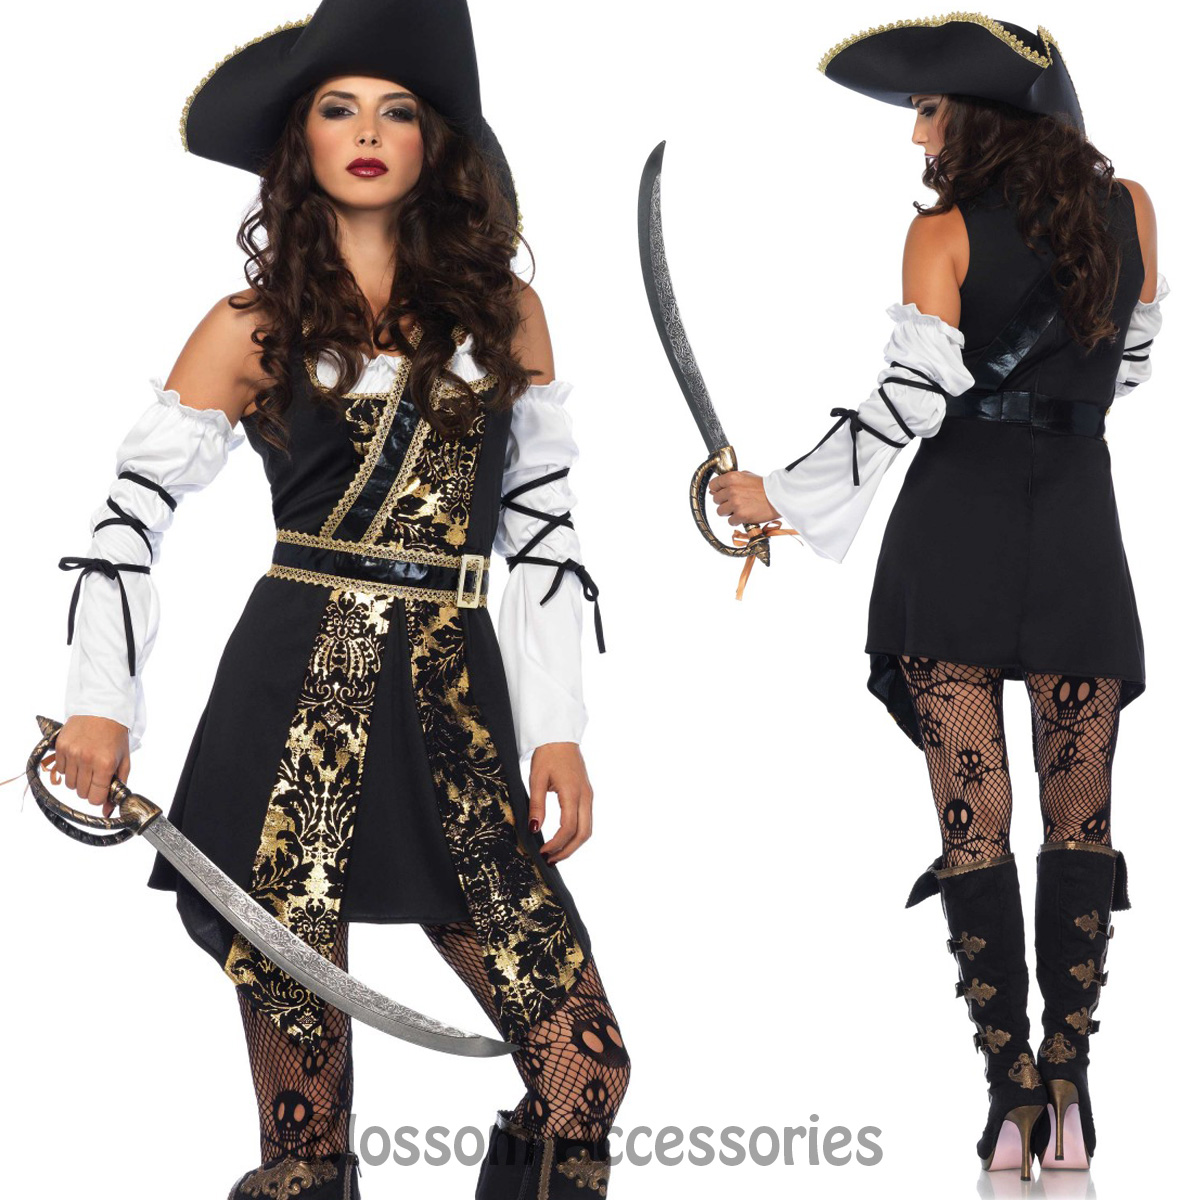 ca81 leg avenue black sea buccaneer pirate womens fancy dress